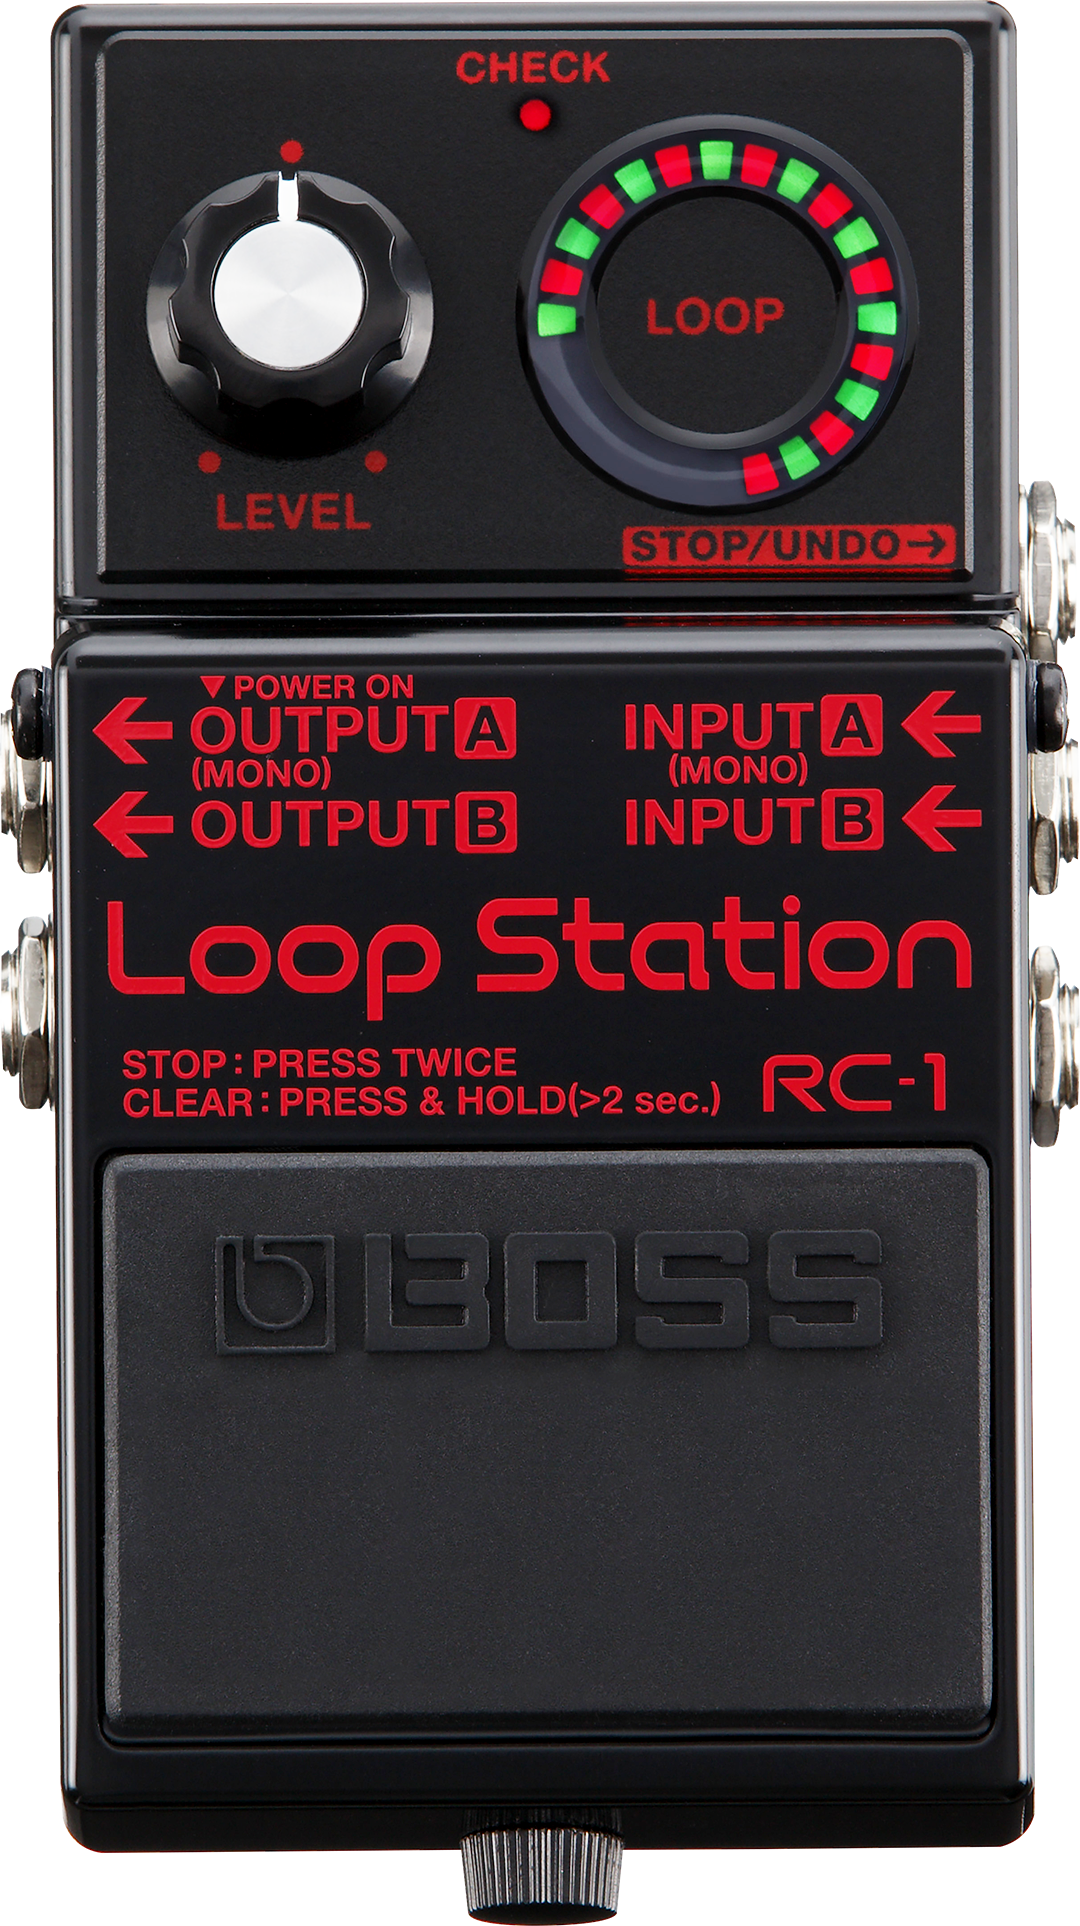 RC-1 Loop Station Limited Edition: RC-1-BK LOOP STATION